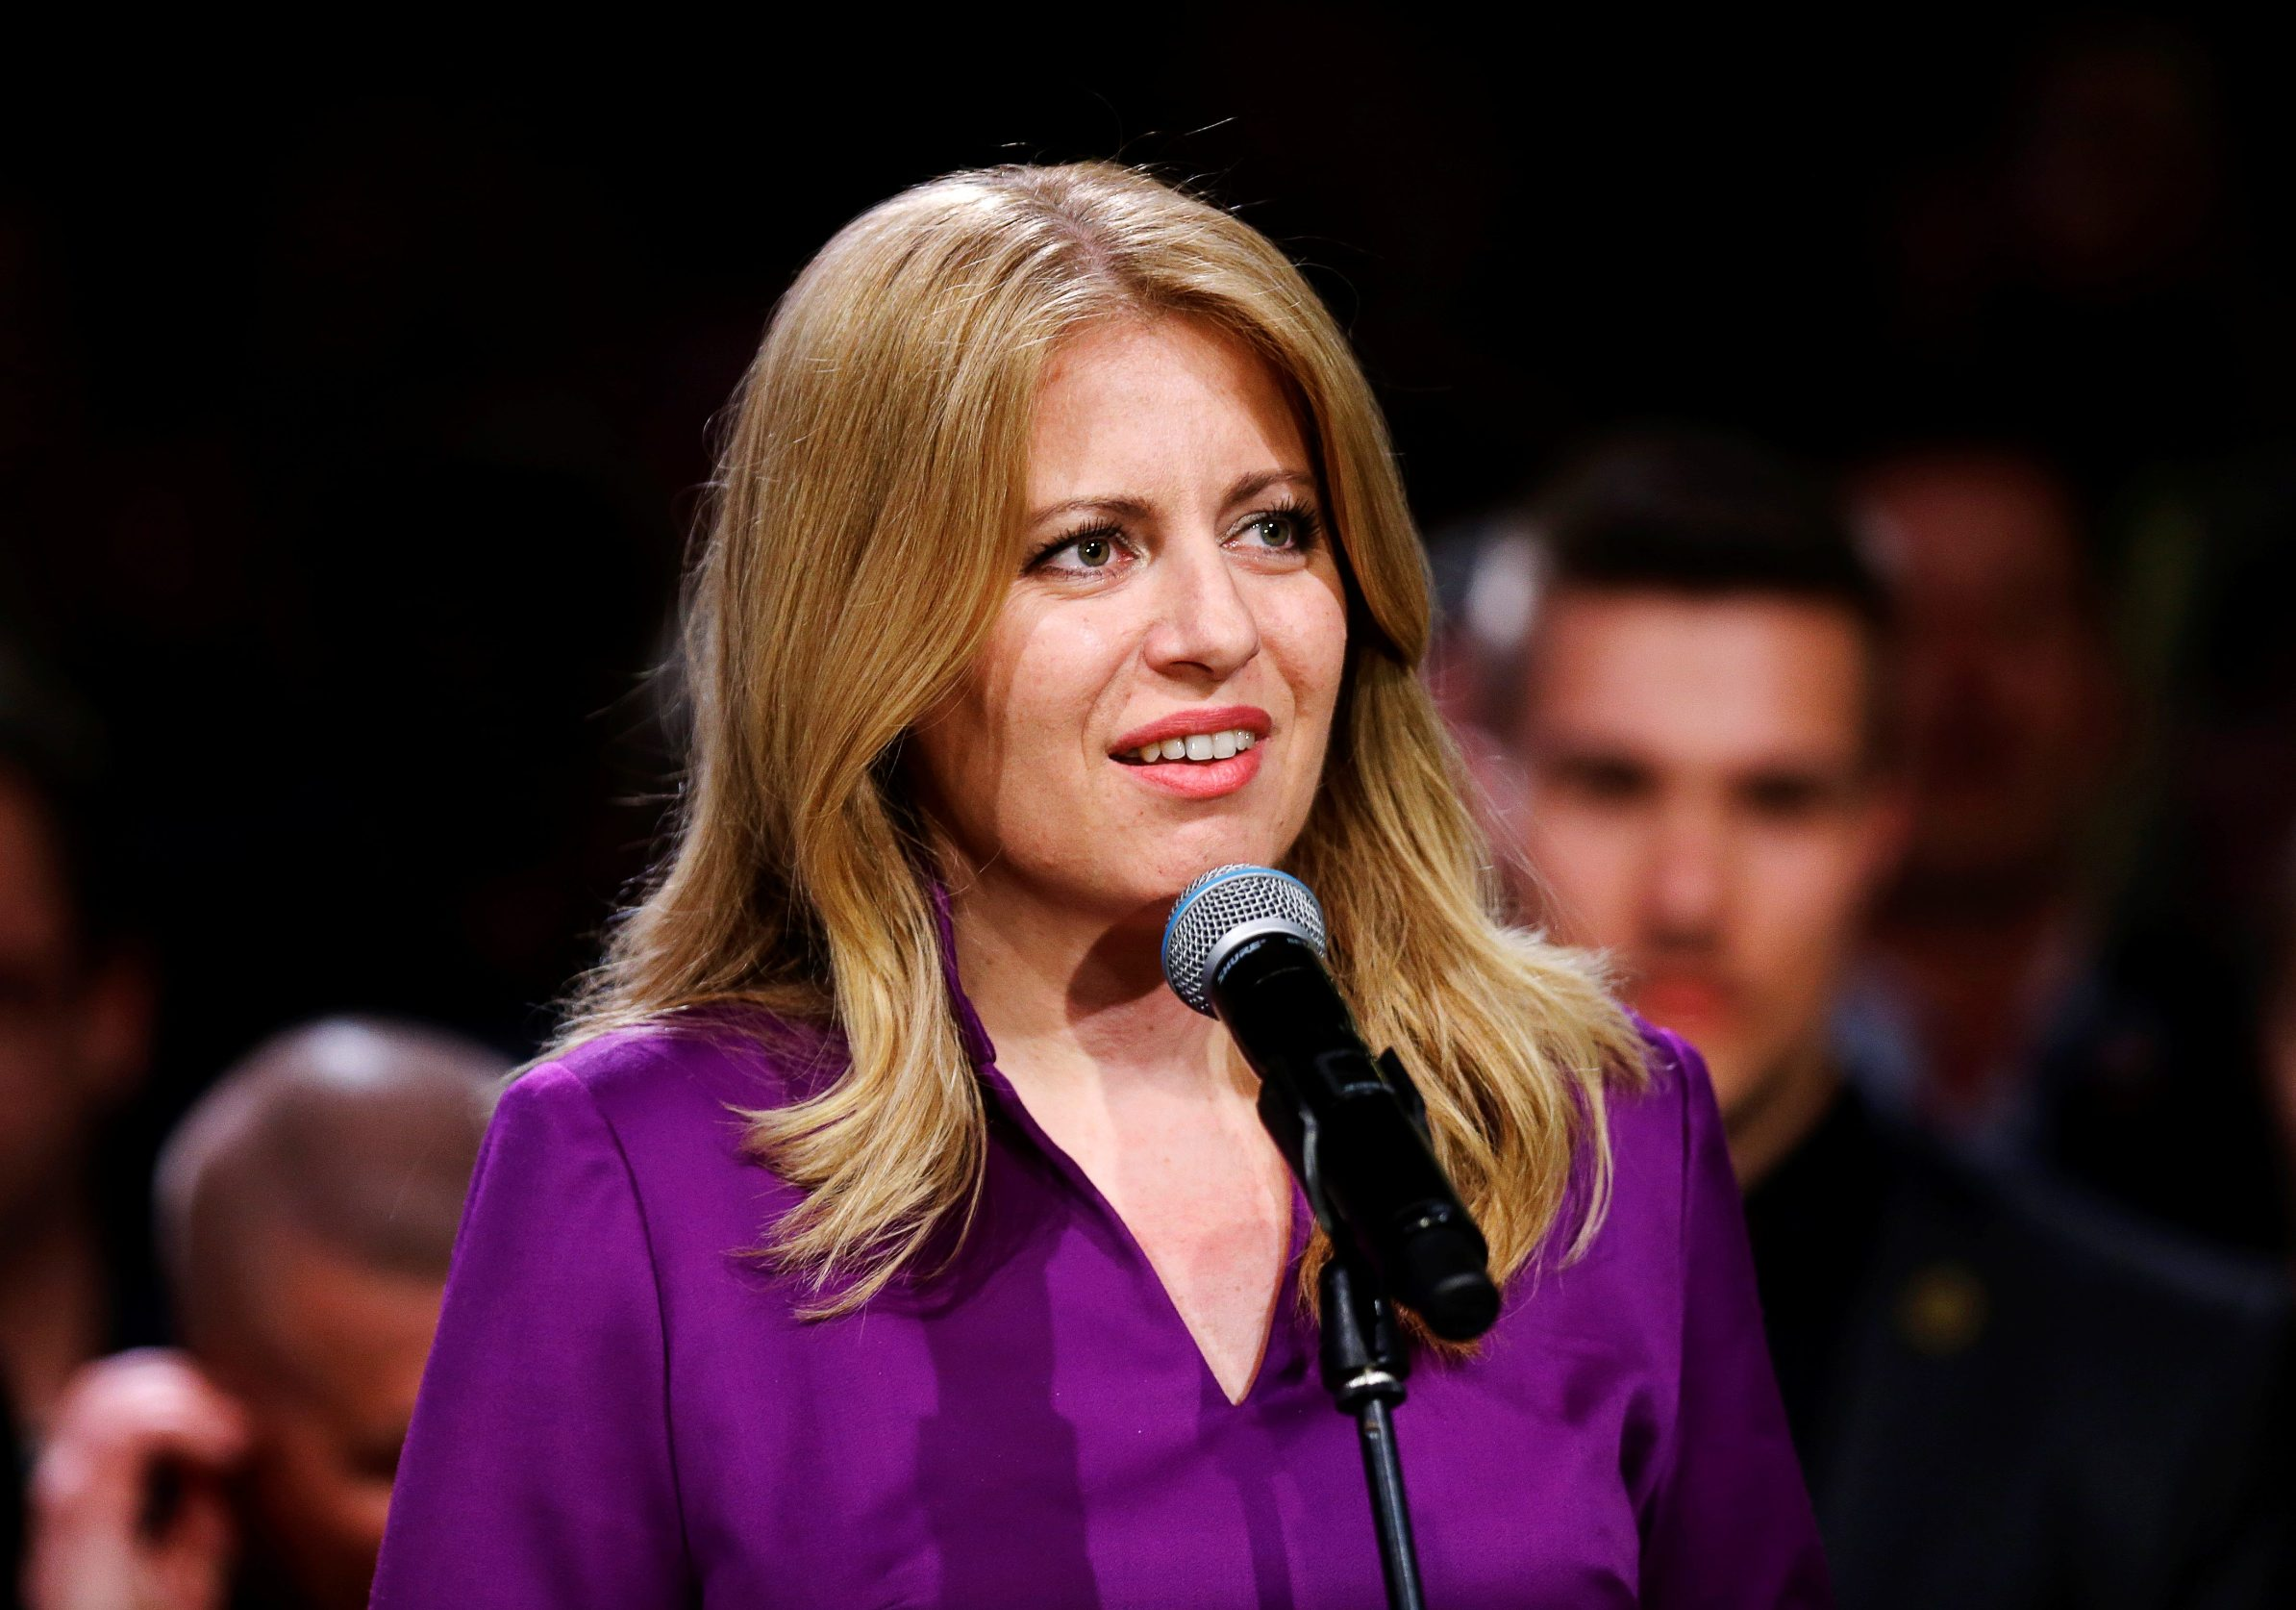 Slovakia's presidential candidate Zuzana Caputova speaks after winning the presidential election, at her party's headquarters in Bratislava, Slovakia, March 30, 2019. REUTERS/David W Cerny